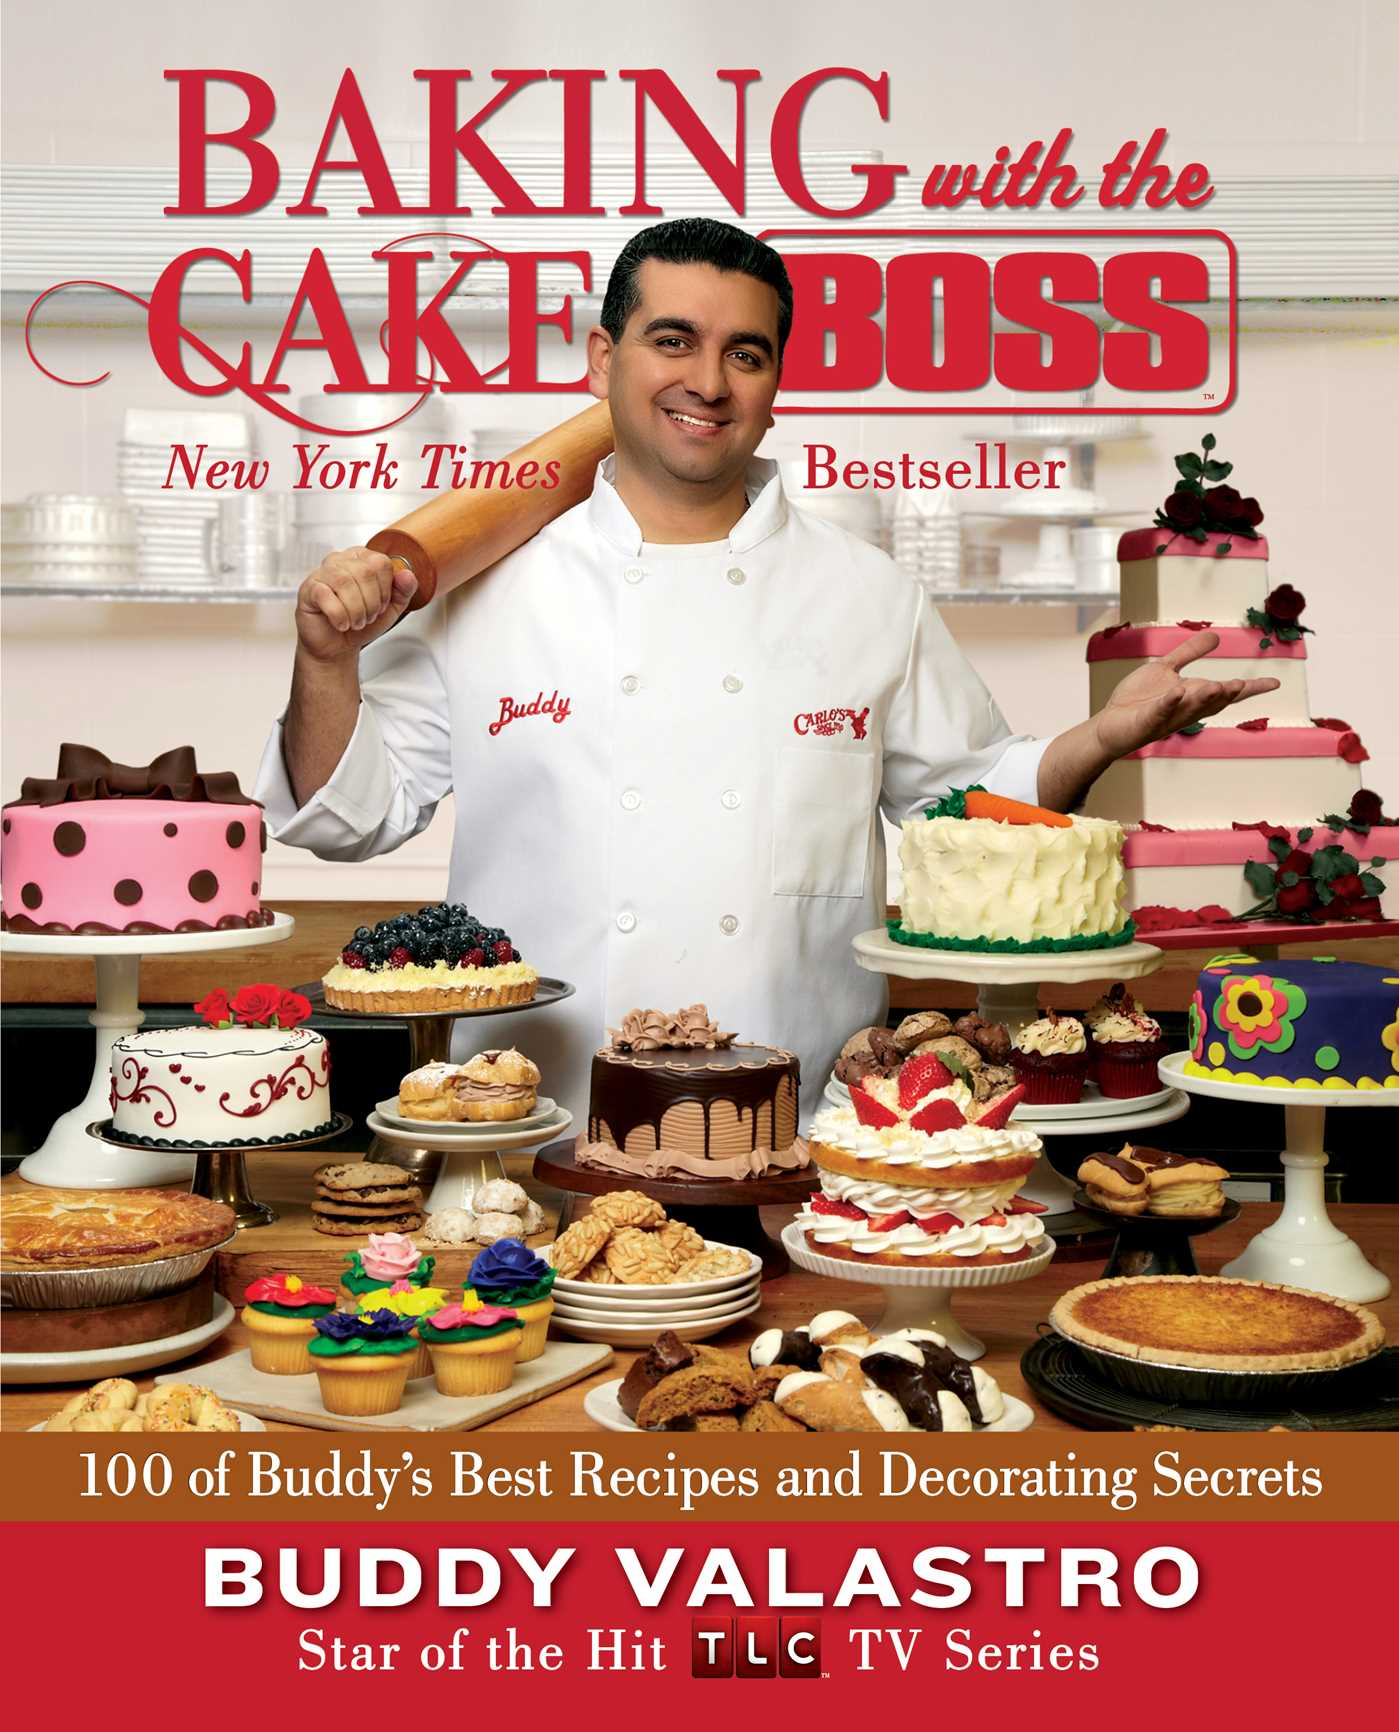 Baking with the cake boss 9781451628913 hr